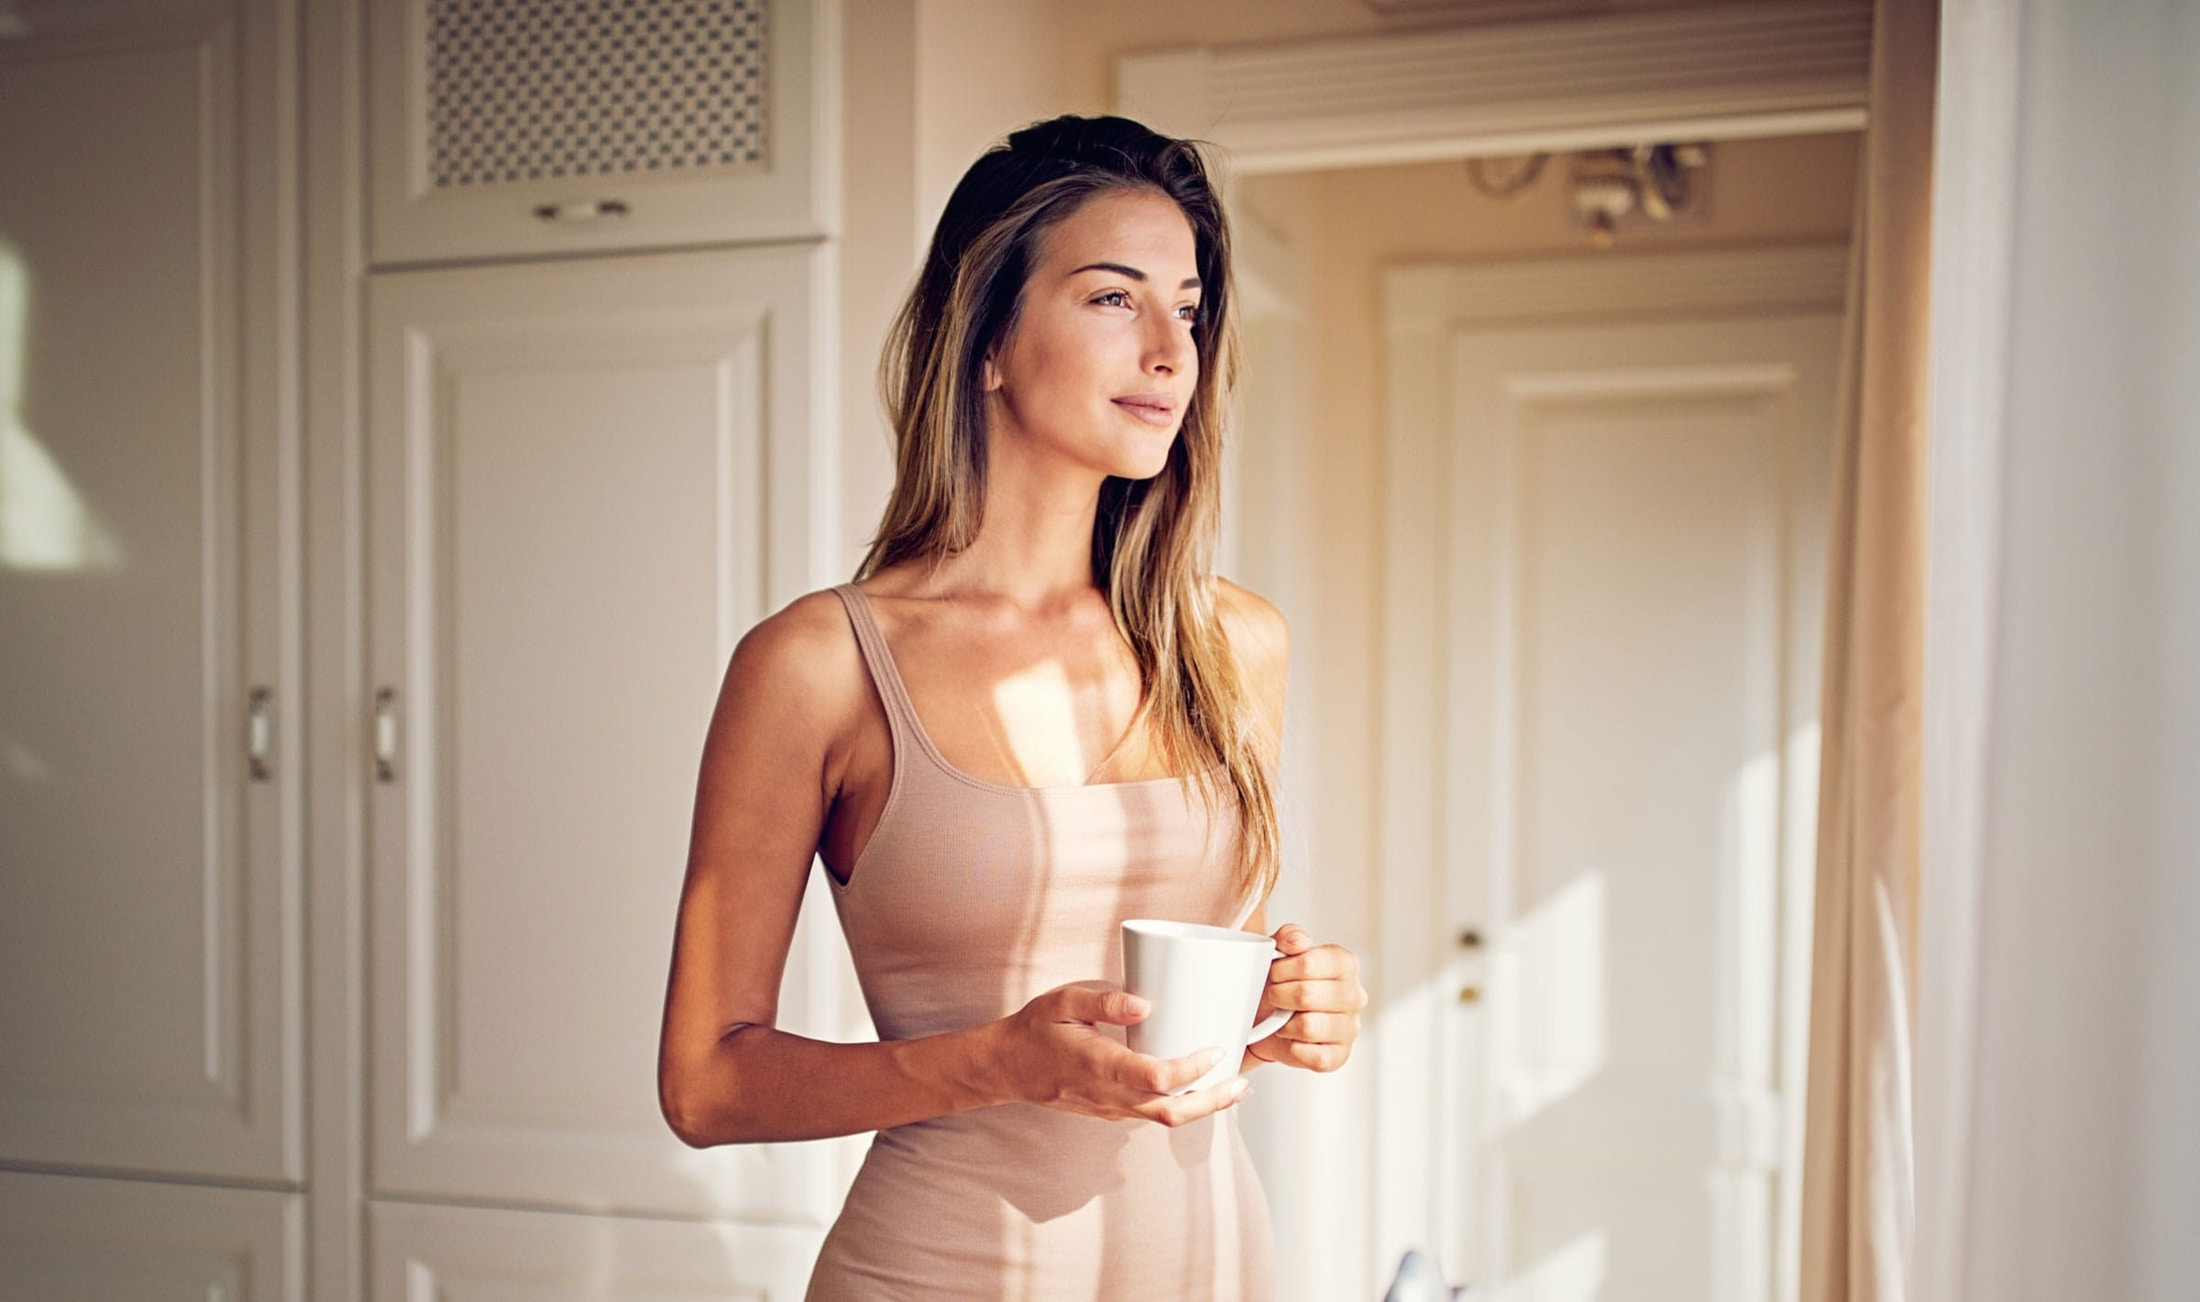 Beautiful Woman Drinking Coffee and Looking Out The Window